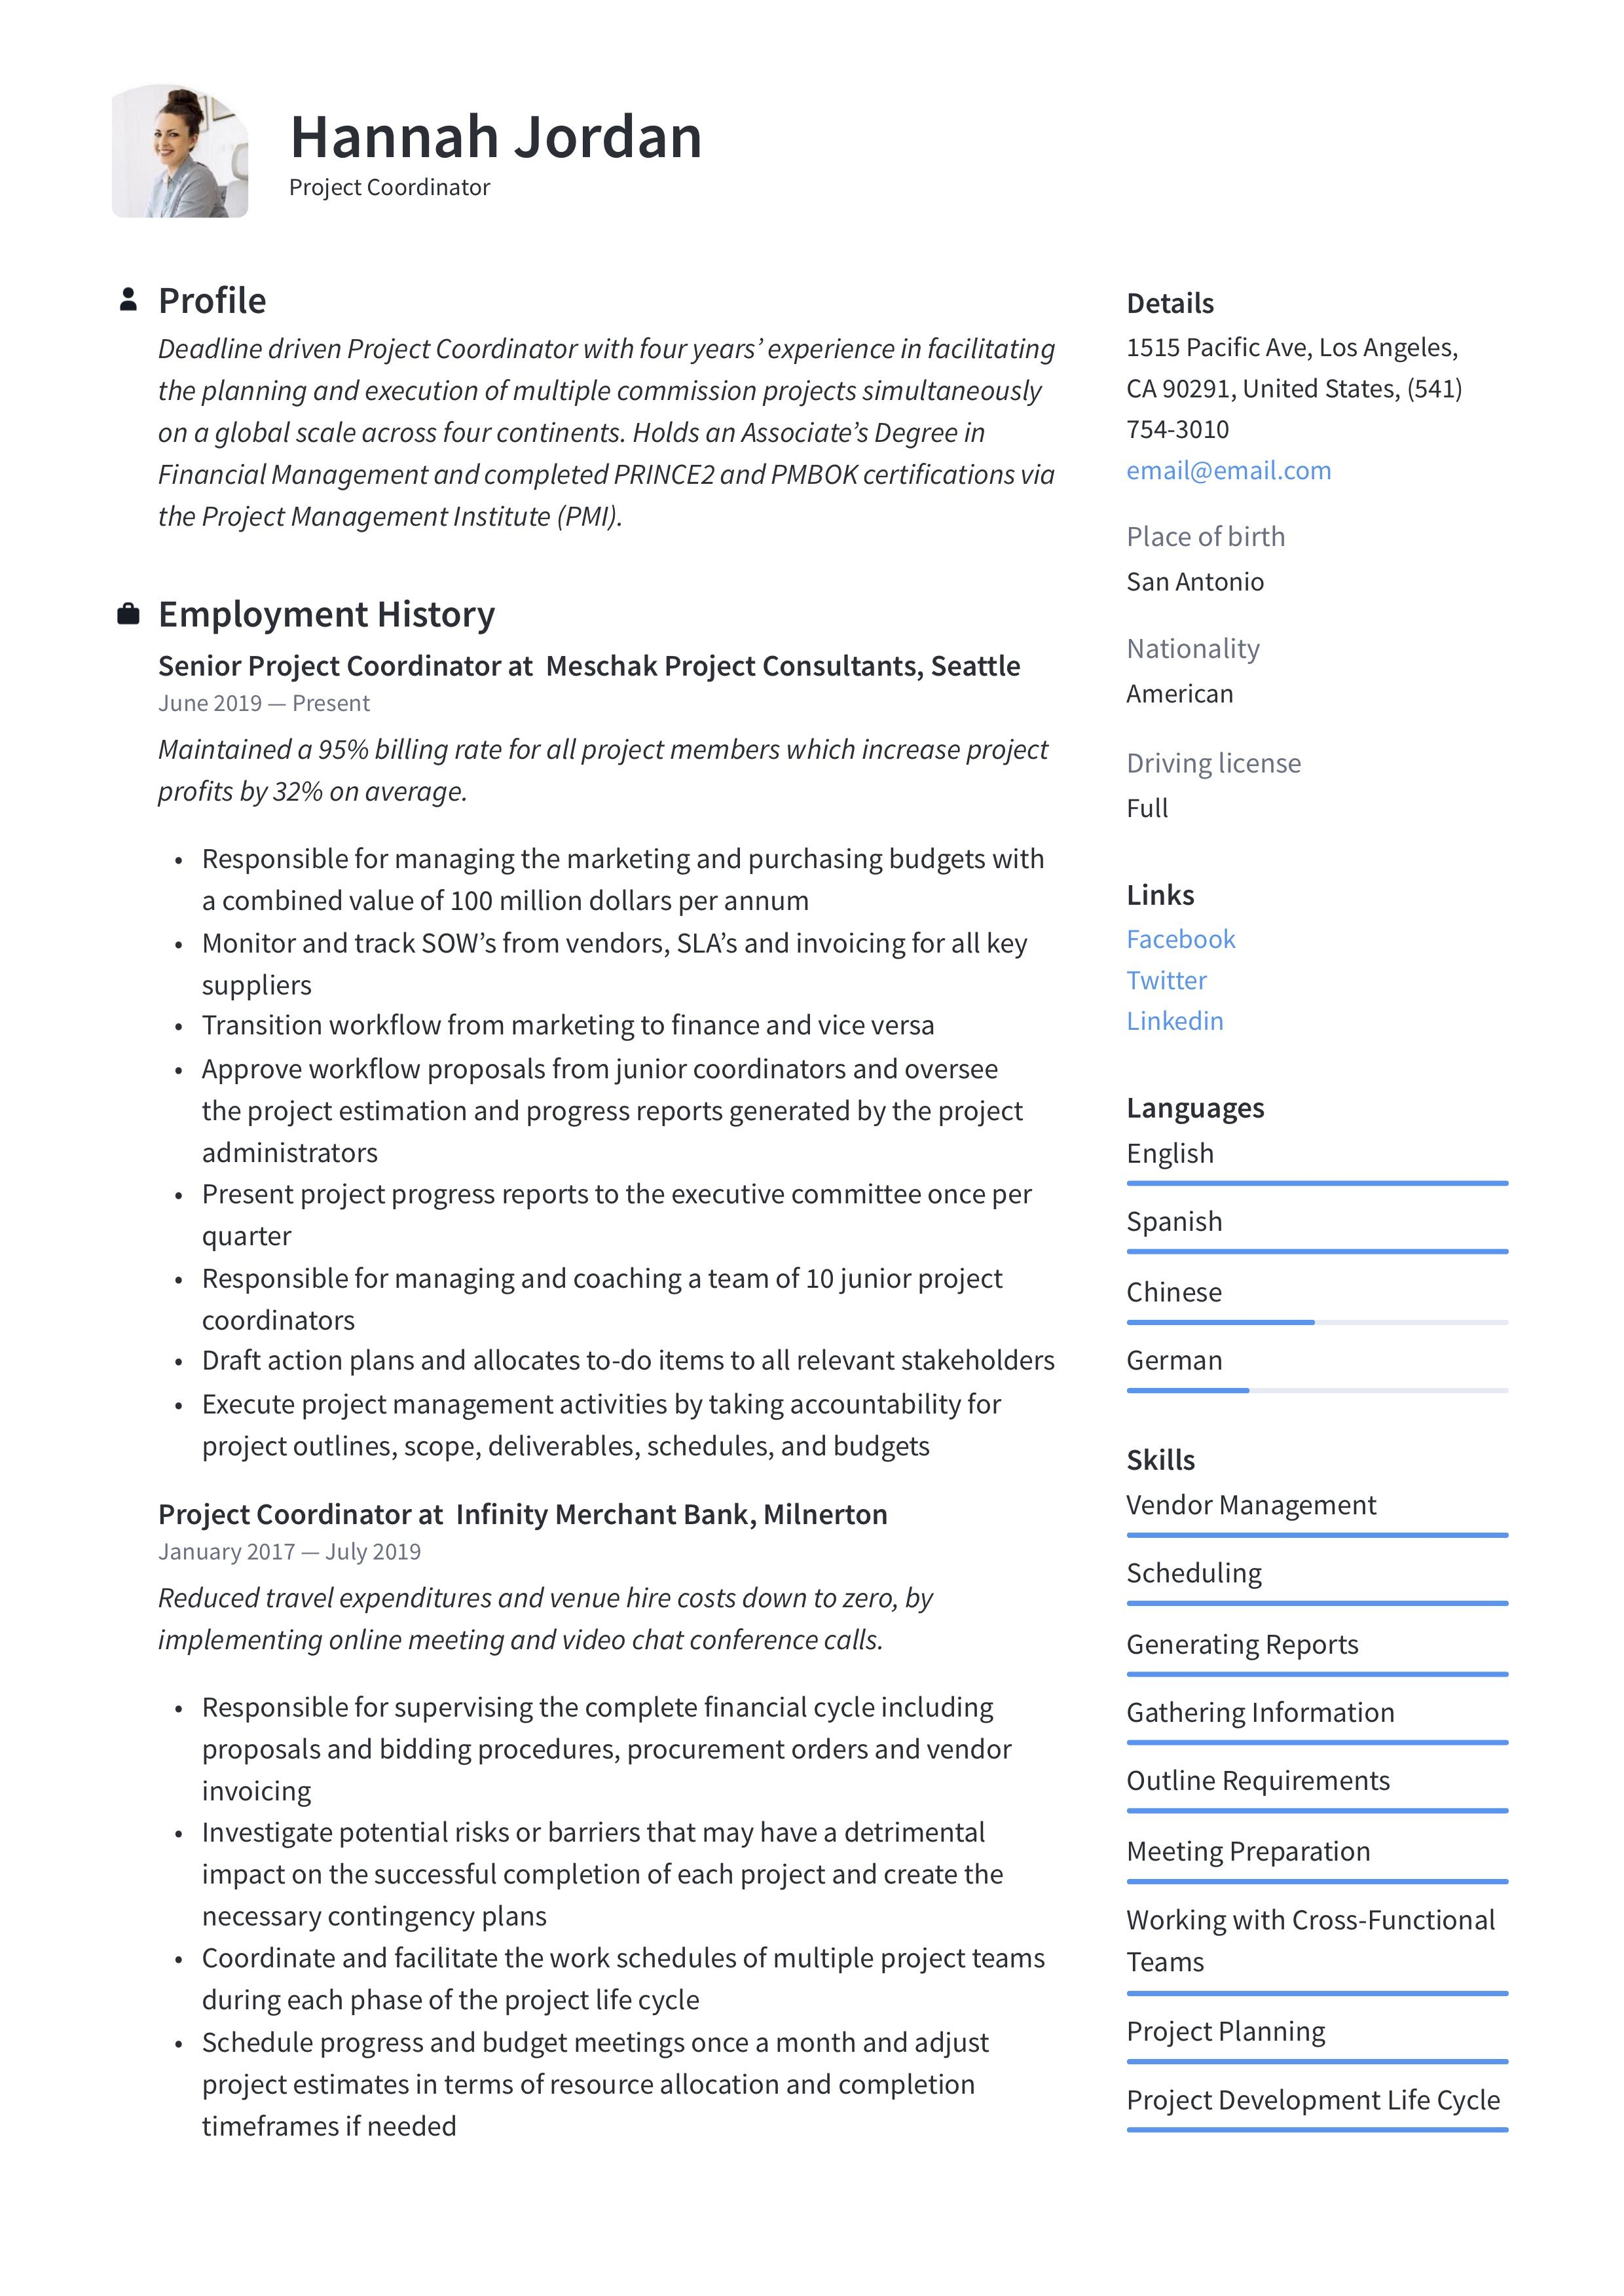 Project Coordinator Resume & Writing Guide in 2020